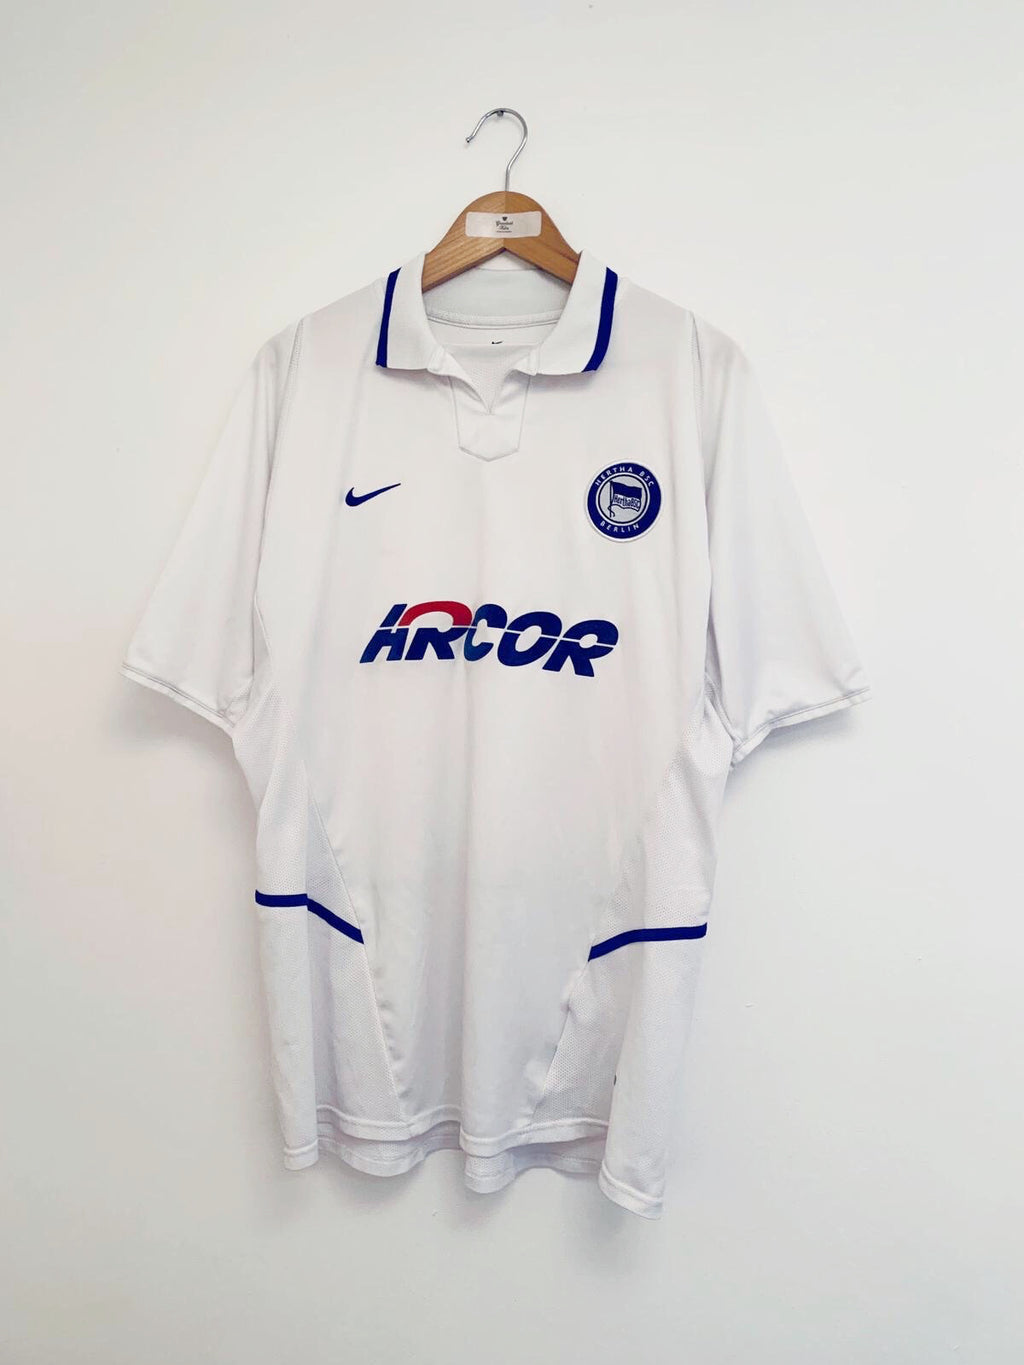 2002/03 Hertha Berlin Away Shirt (XL) 9/10